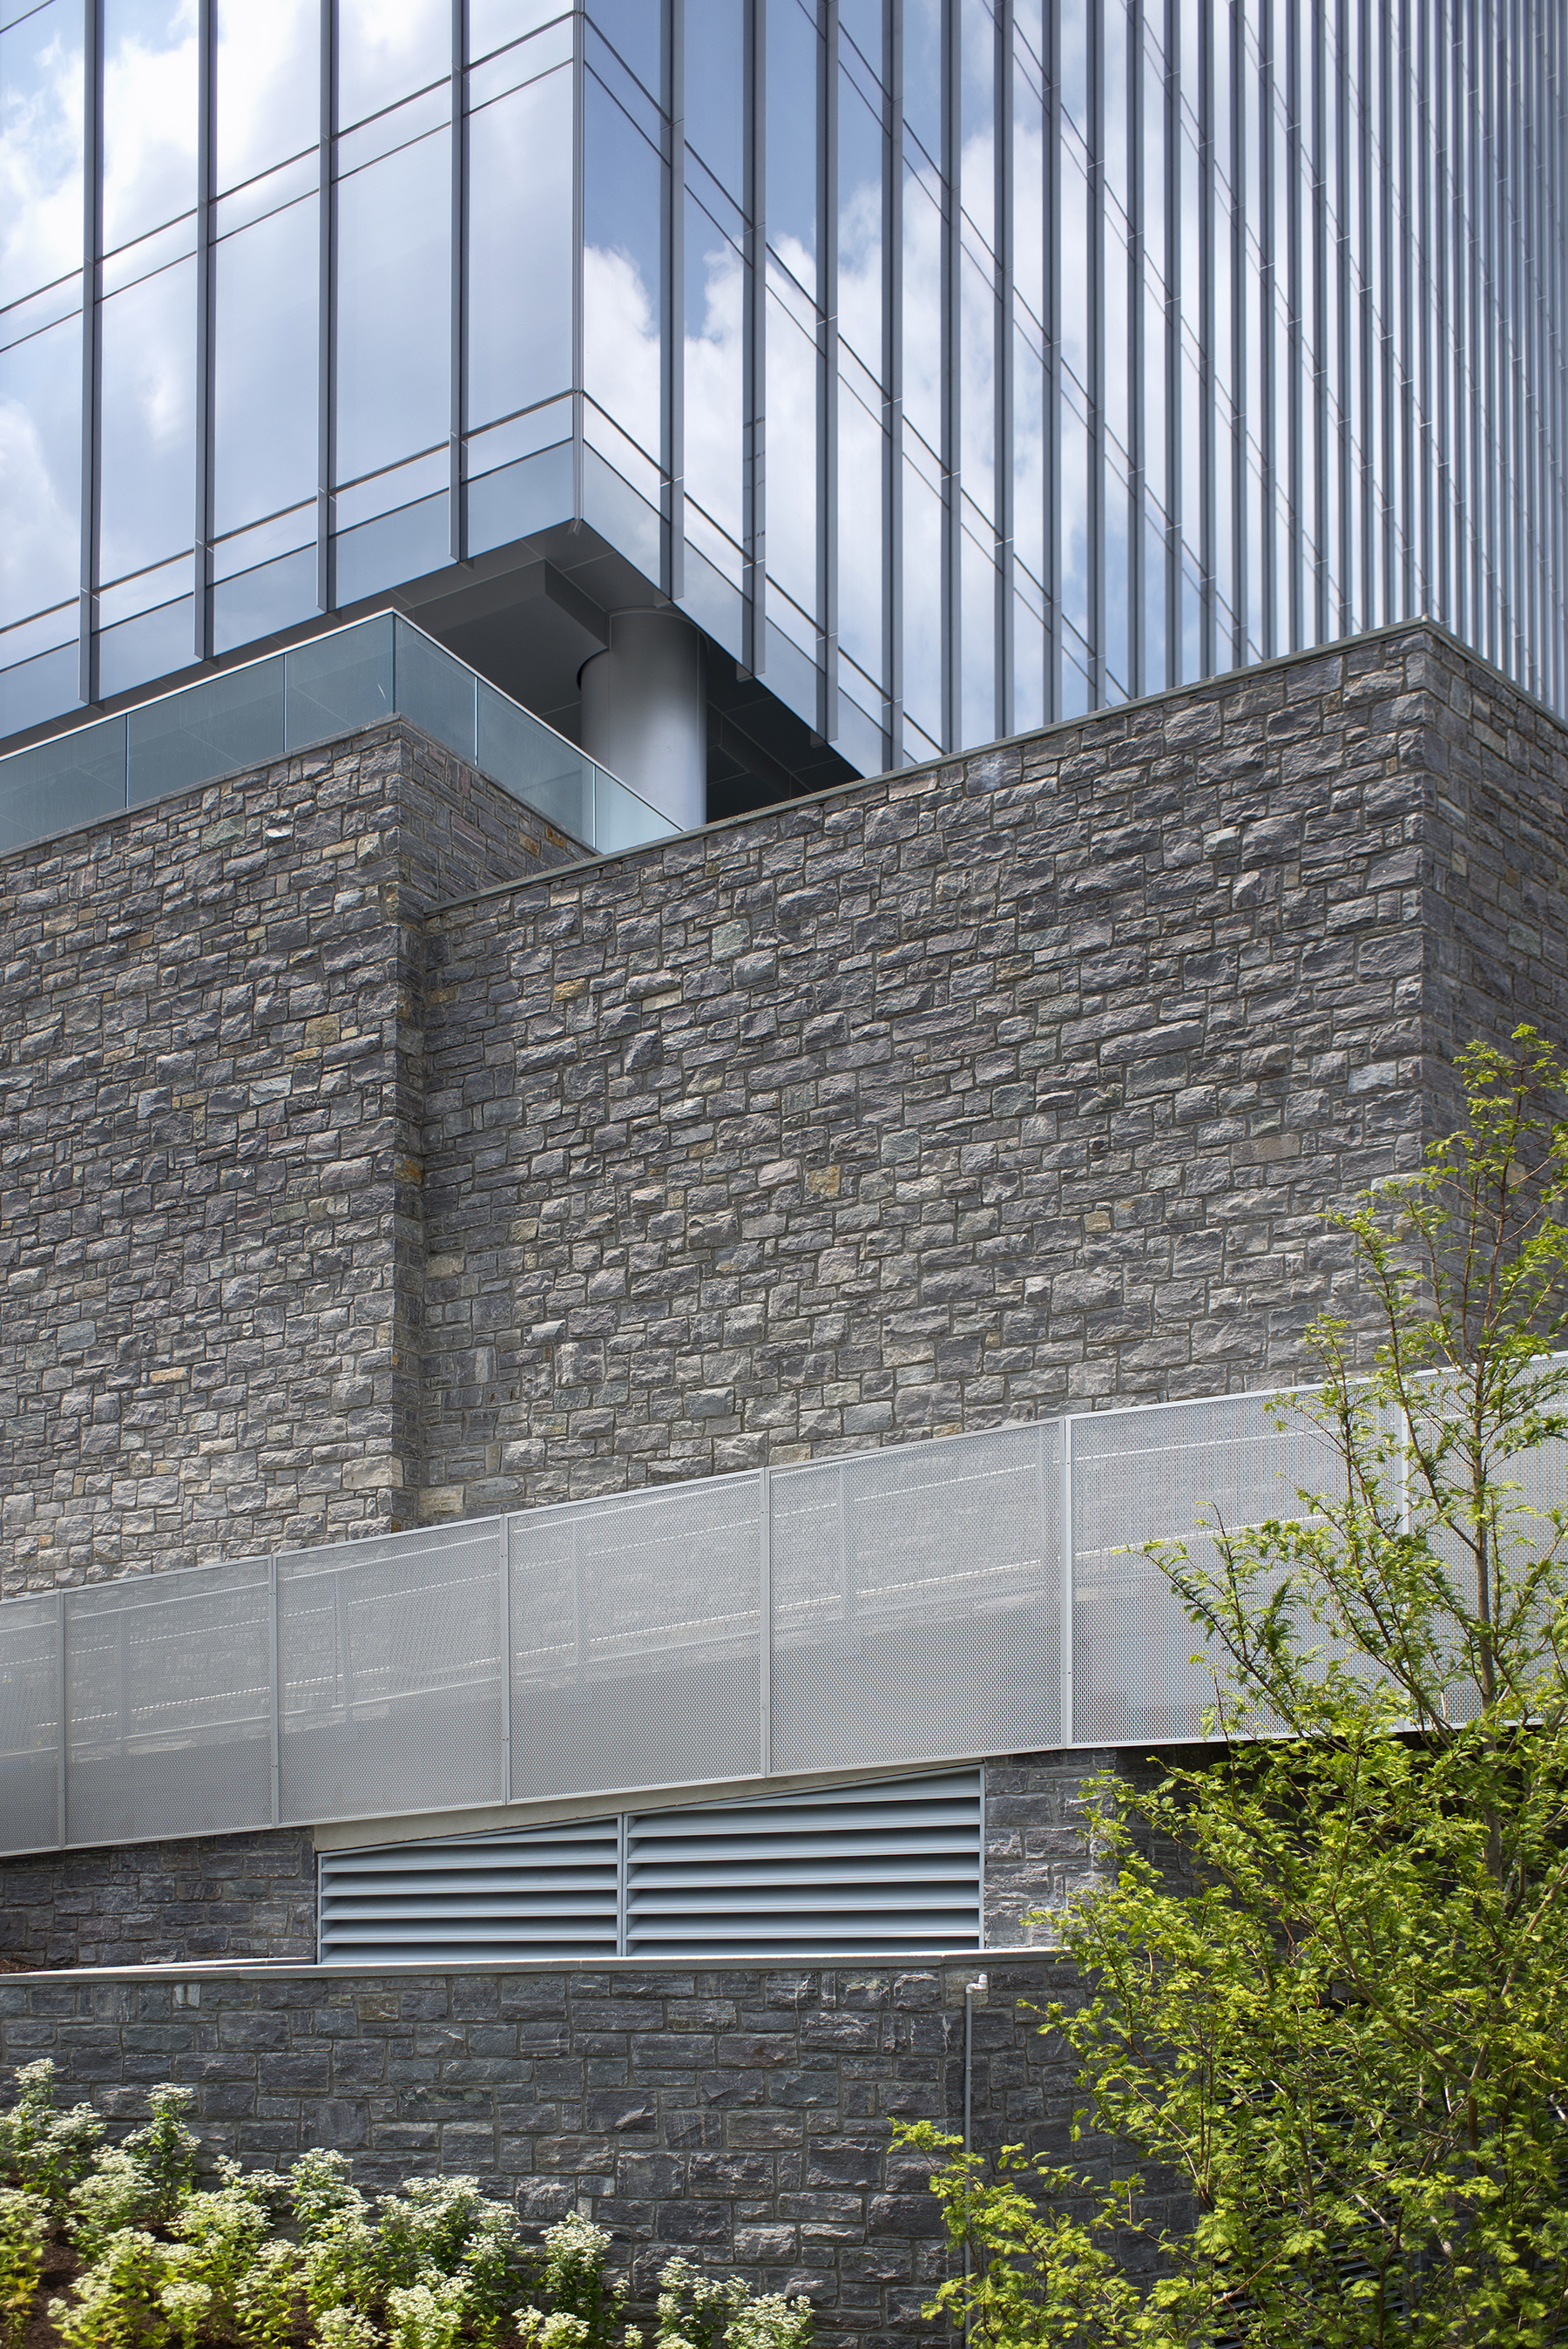 stone walls in front of building